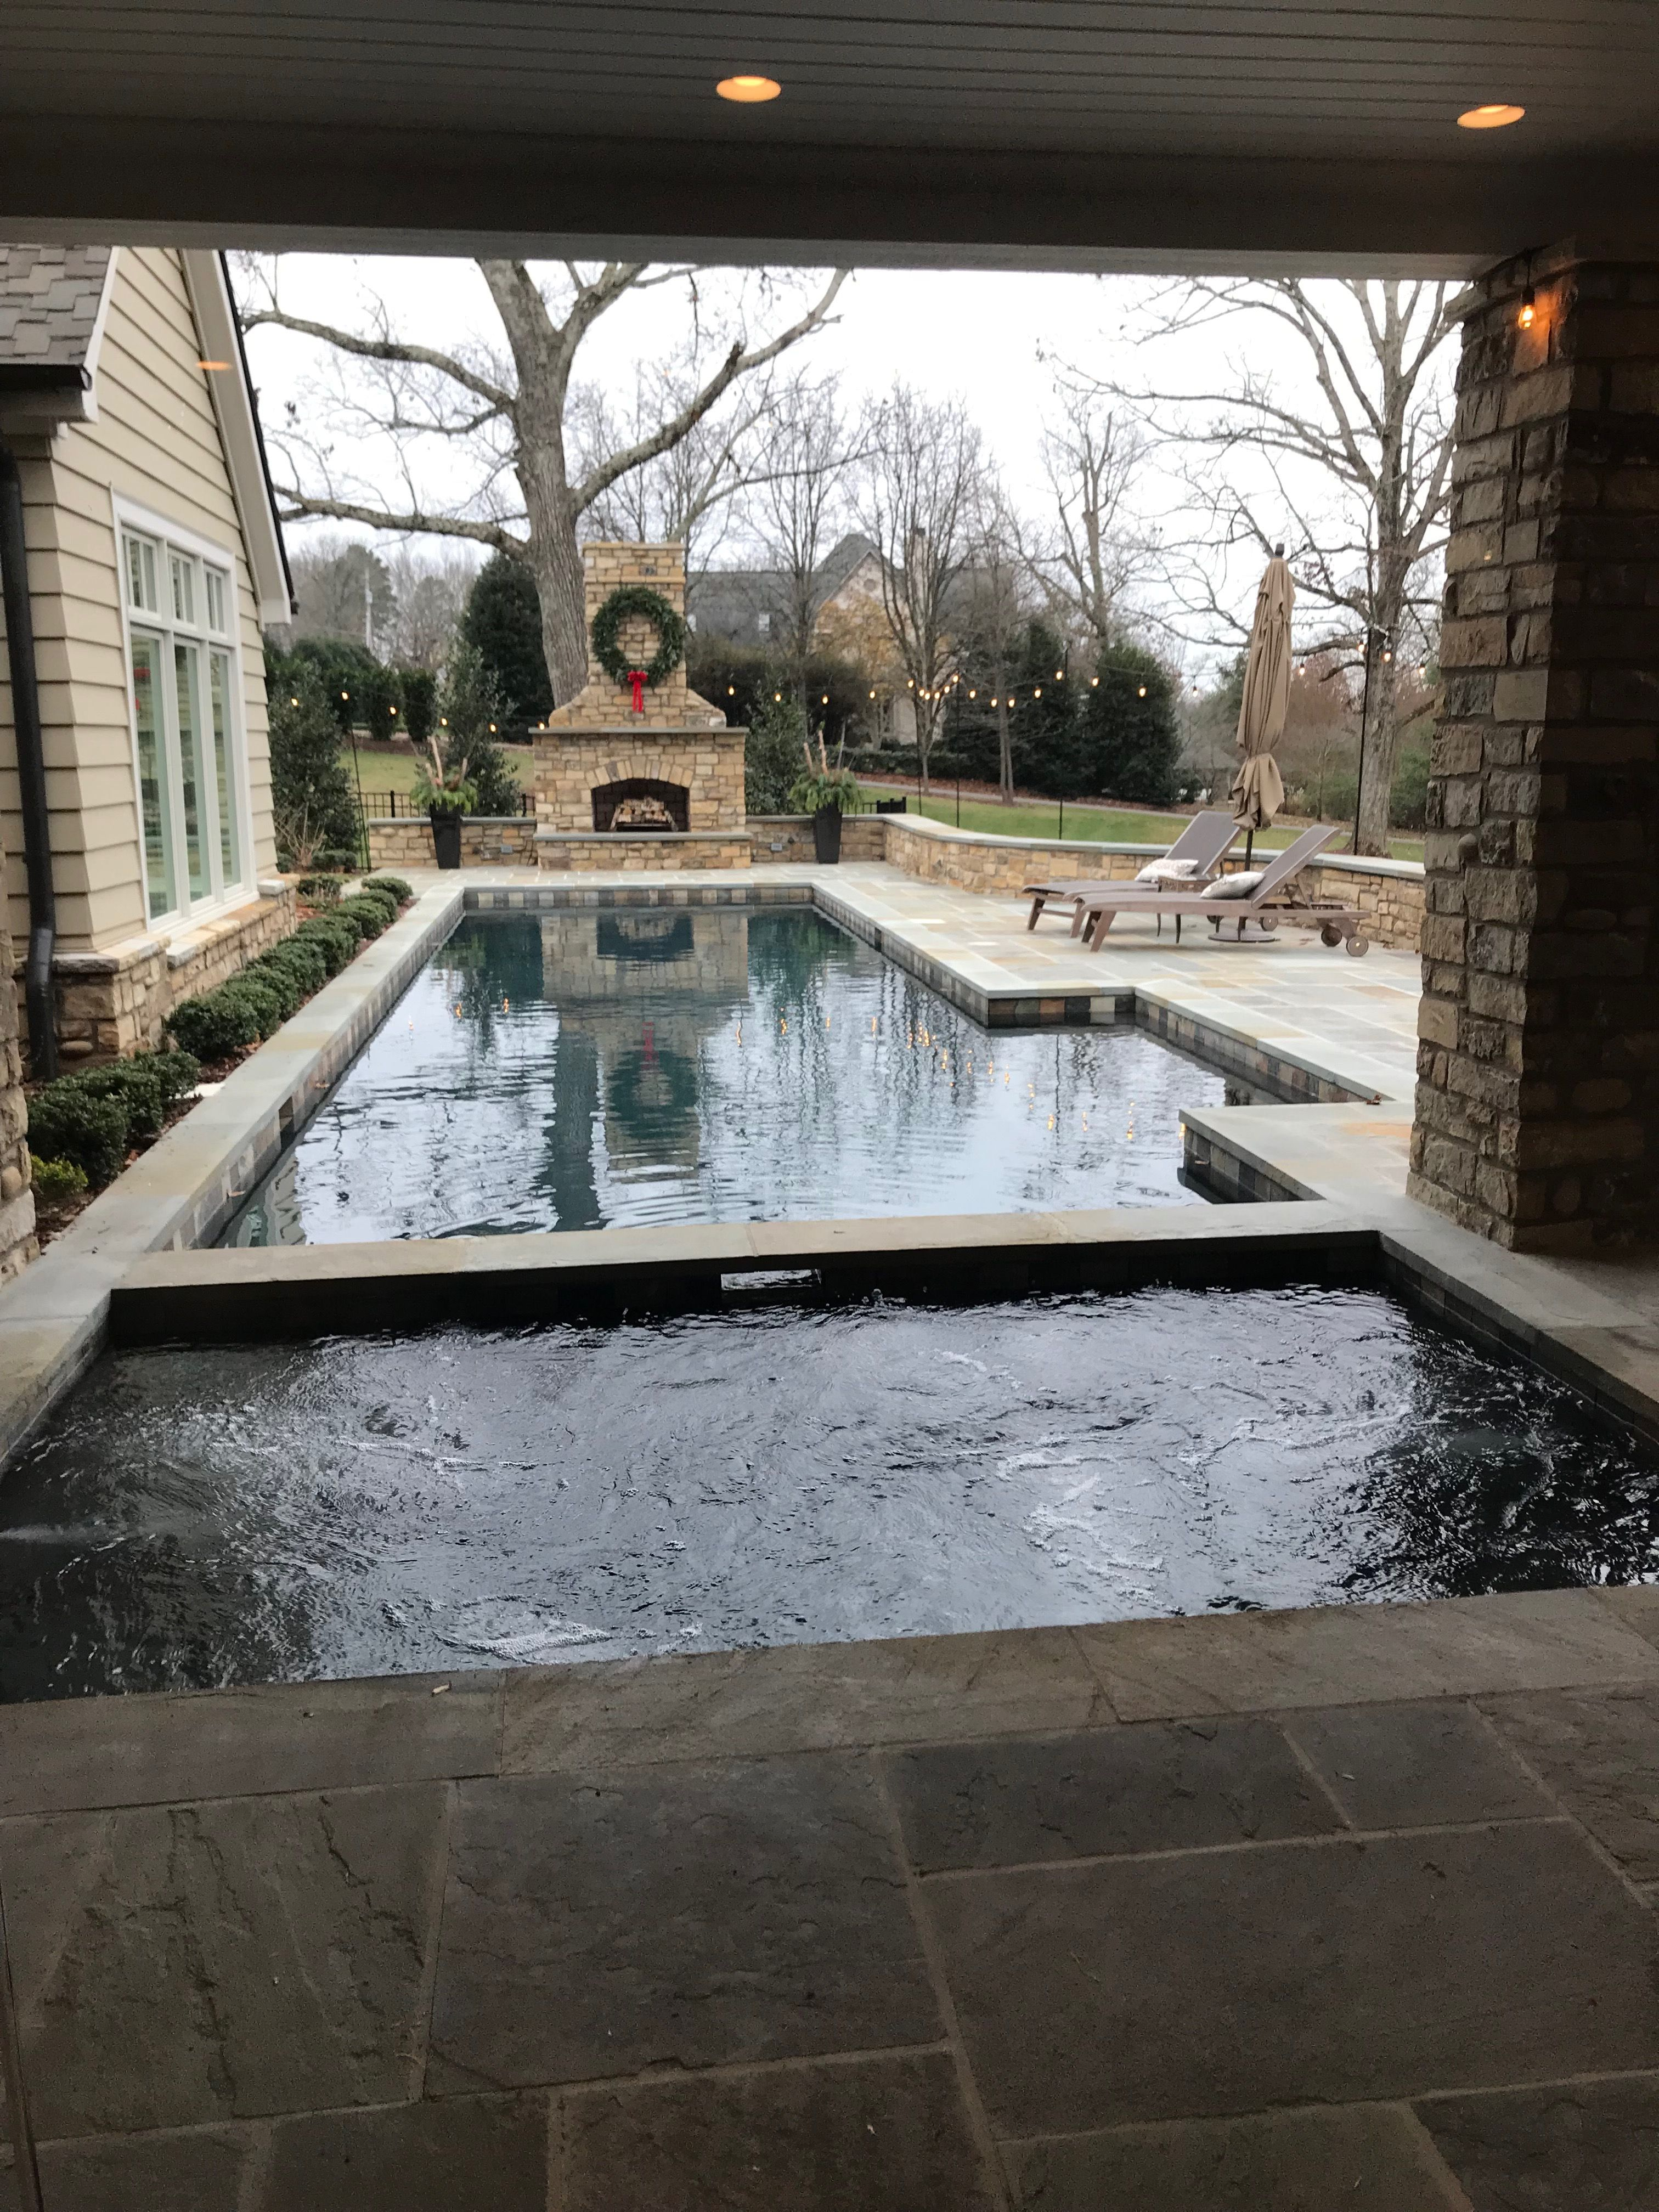 Hot Tub Under Overhang With Lap Pool Lap Pools Backyard Hot Tub Backyard Pool Hot Tub